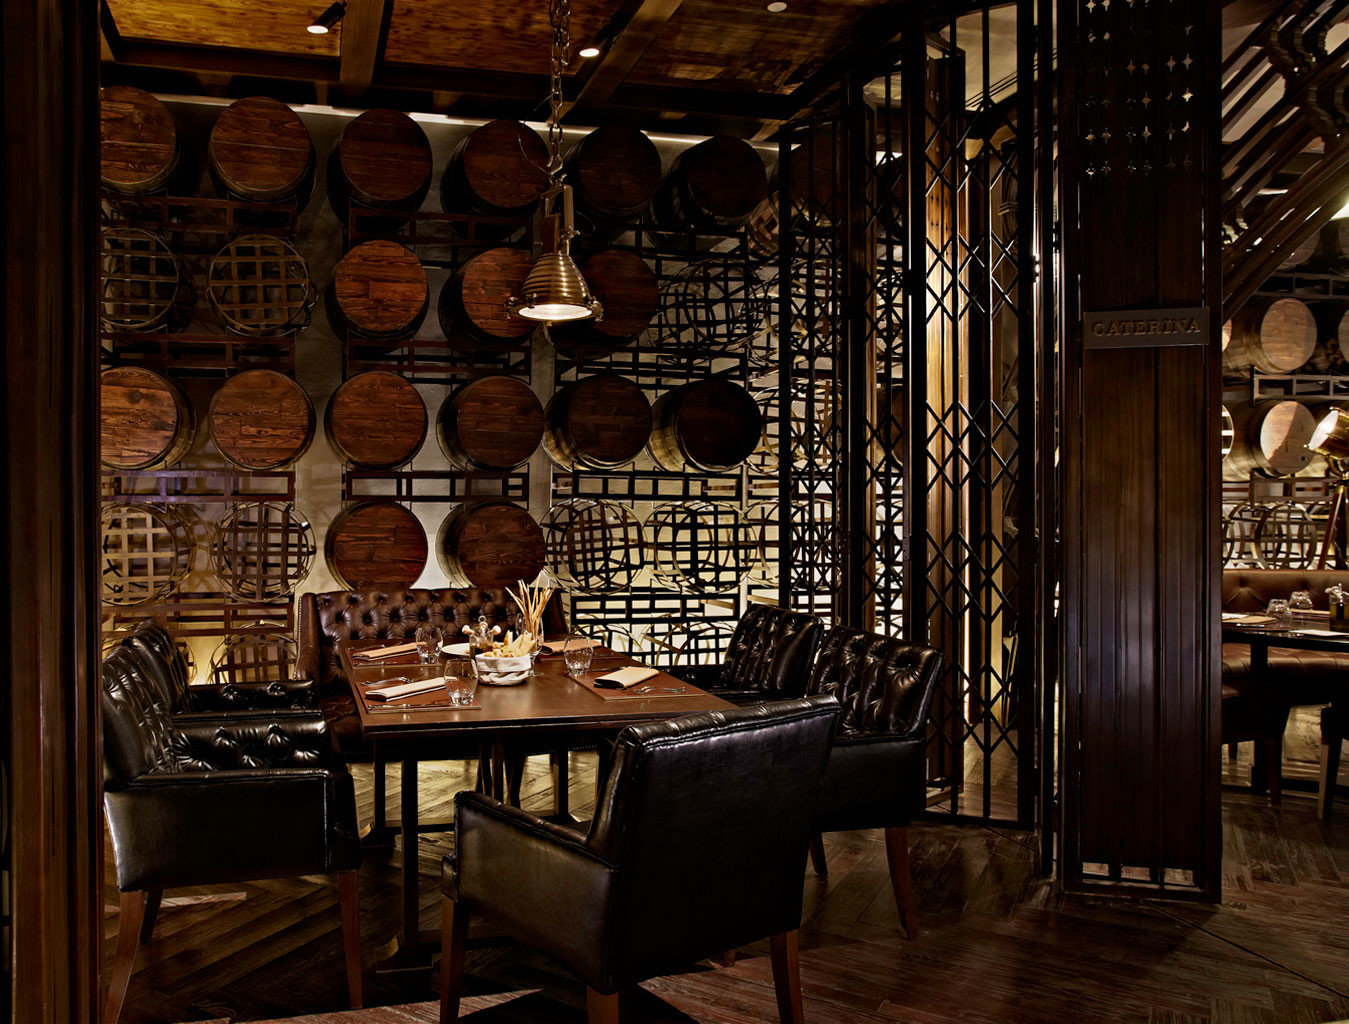 City Dining Drink Eat Elegant Hotels Nightlife Scenic views Shop indoor floor room Winery restaurant Bar interior design lighting estate wine cellar tavern basement